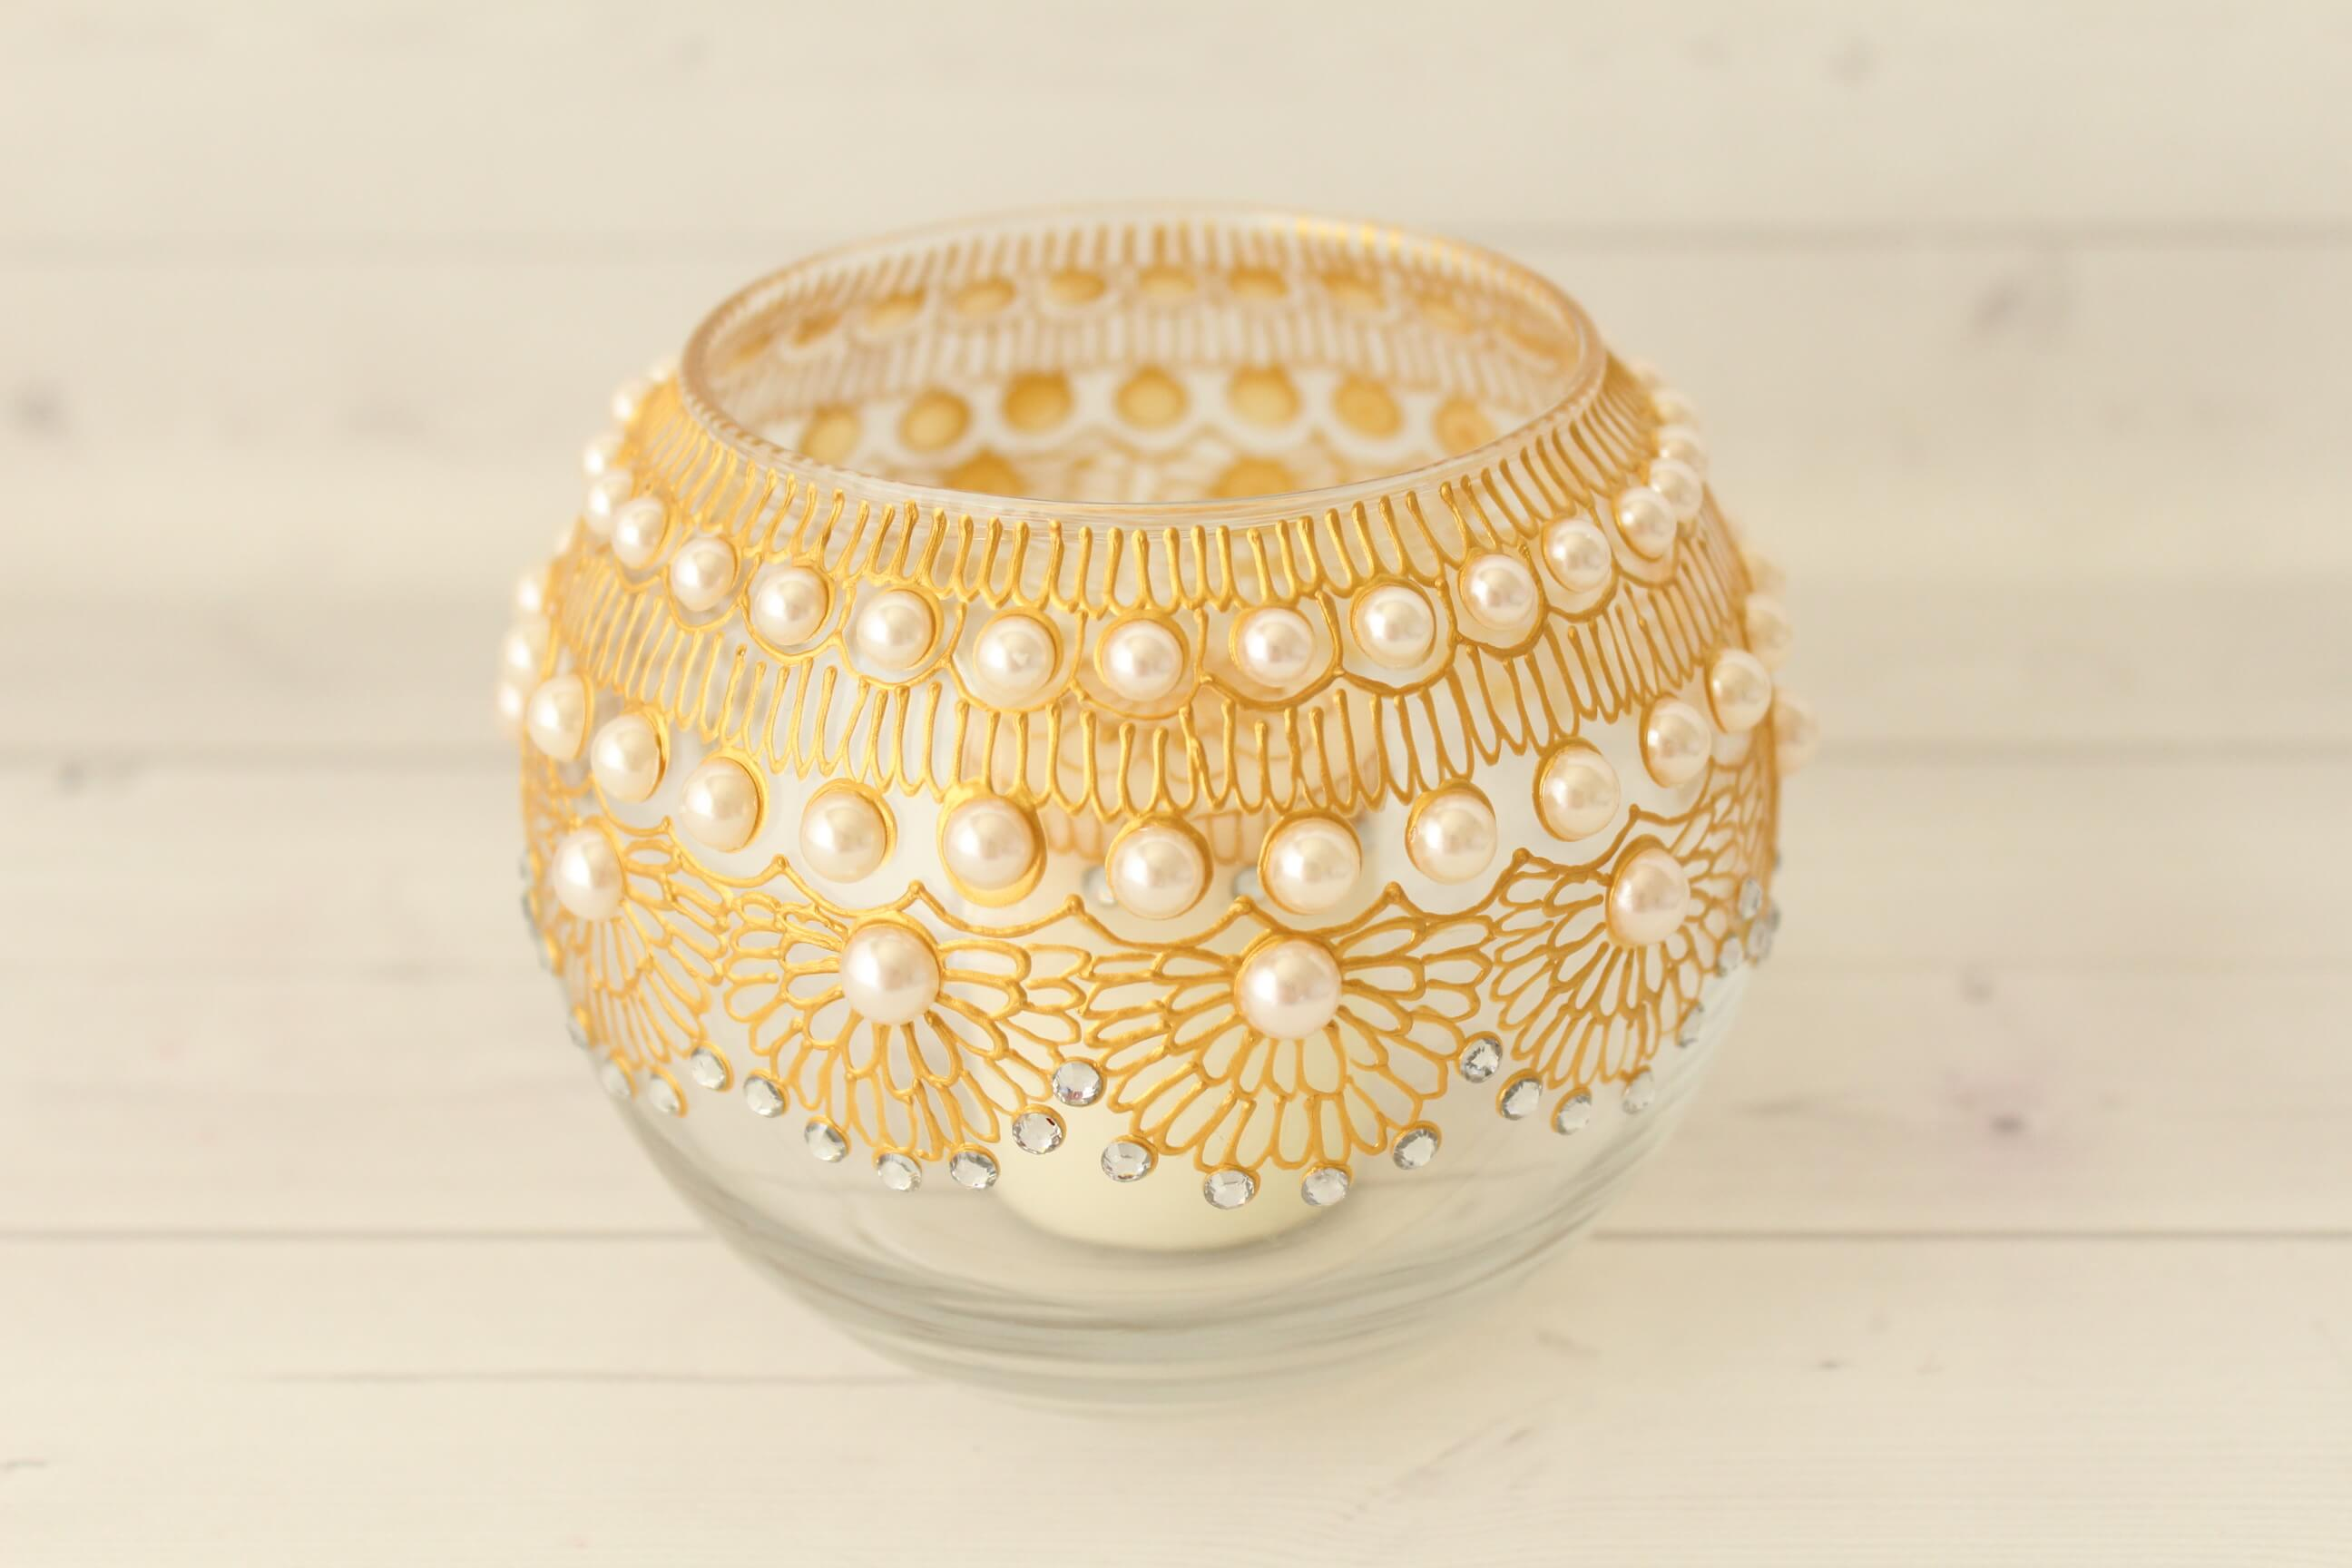 Candle Holder Bowl with Pearls